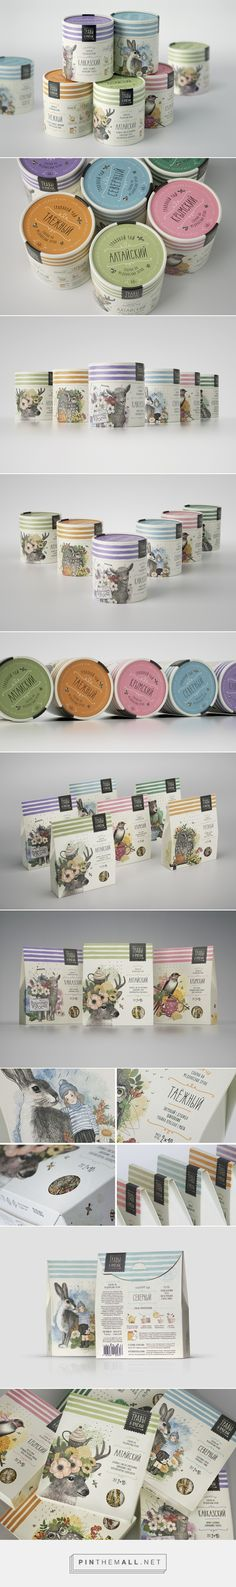 Herbs and Bees packaging by Masha Ponomareva, Maria Mordvintsev, Vera Zvereva